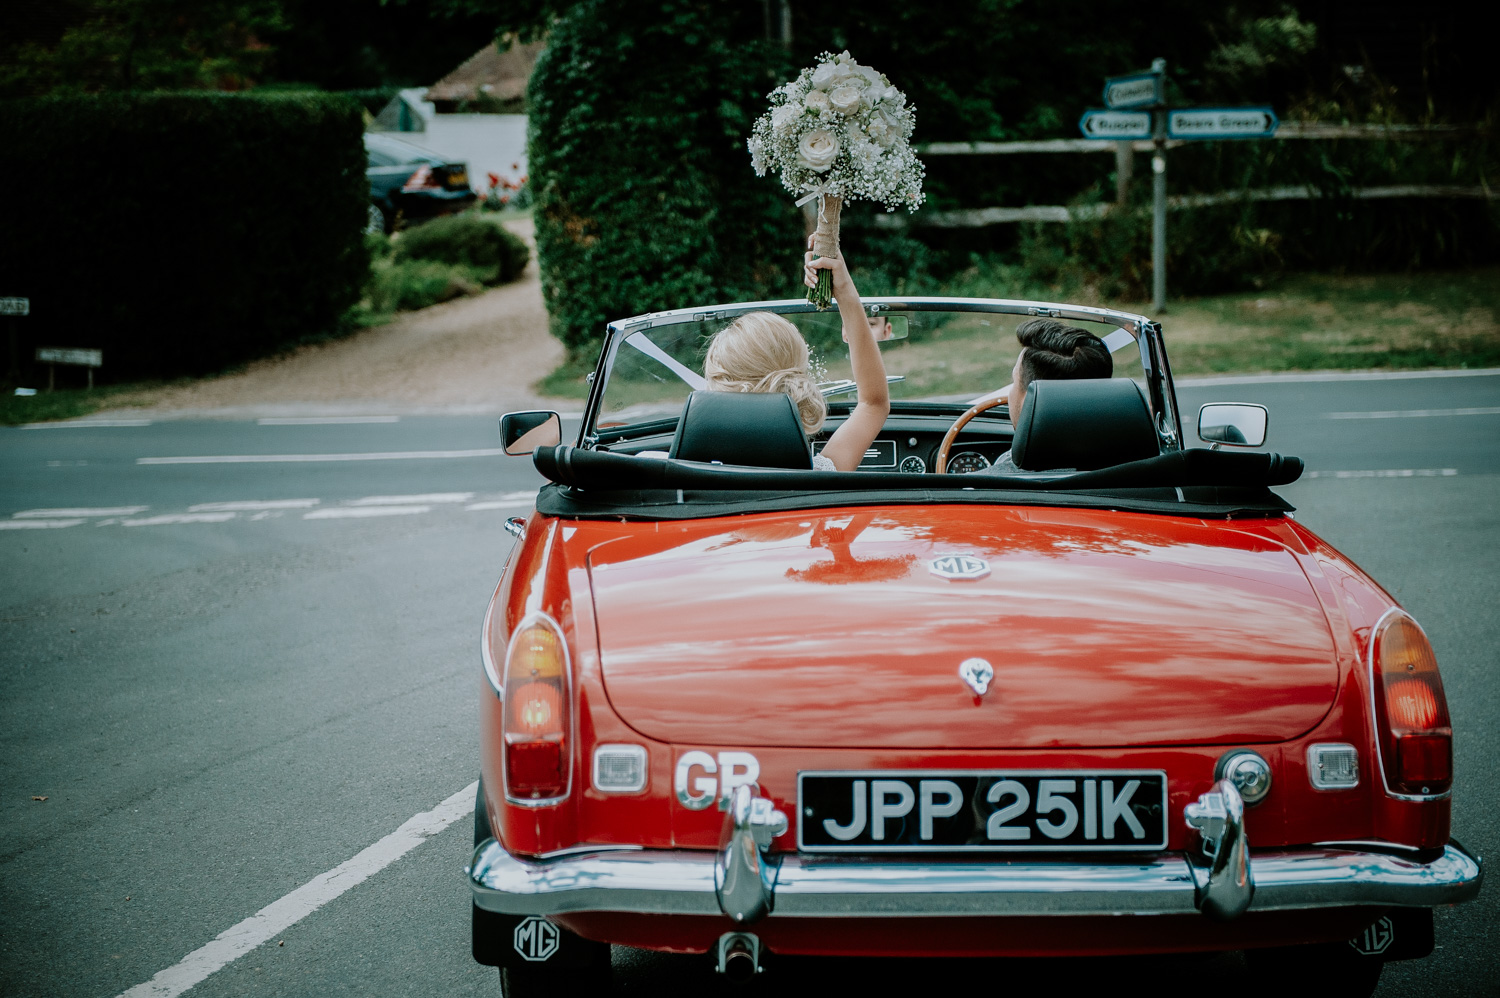 Joels and Amie wedding at Greens barn in Dorking